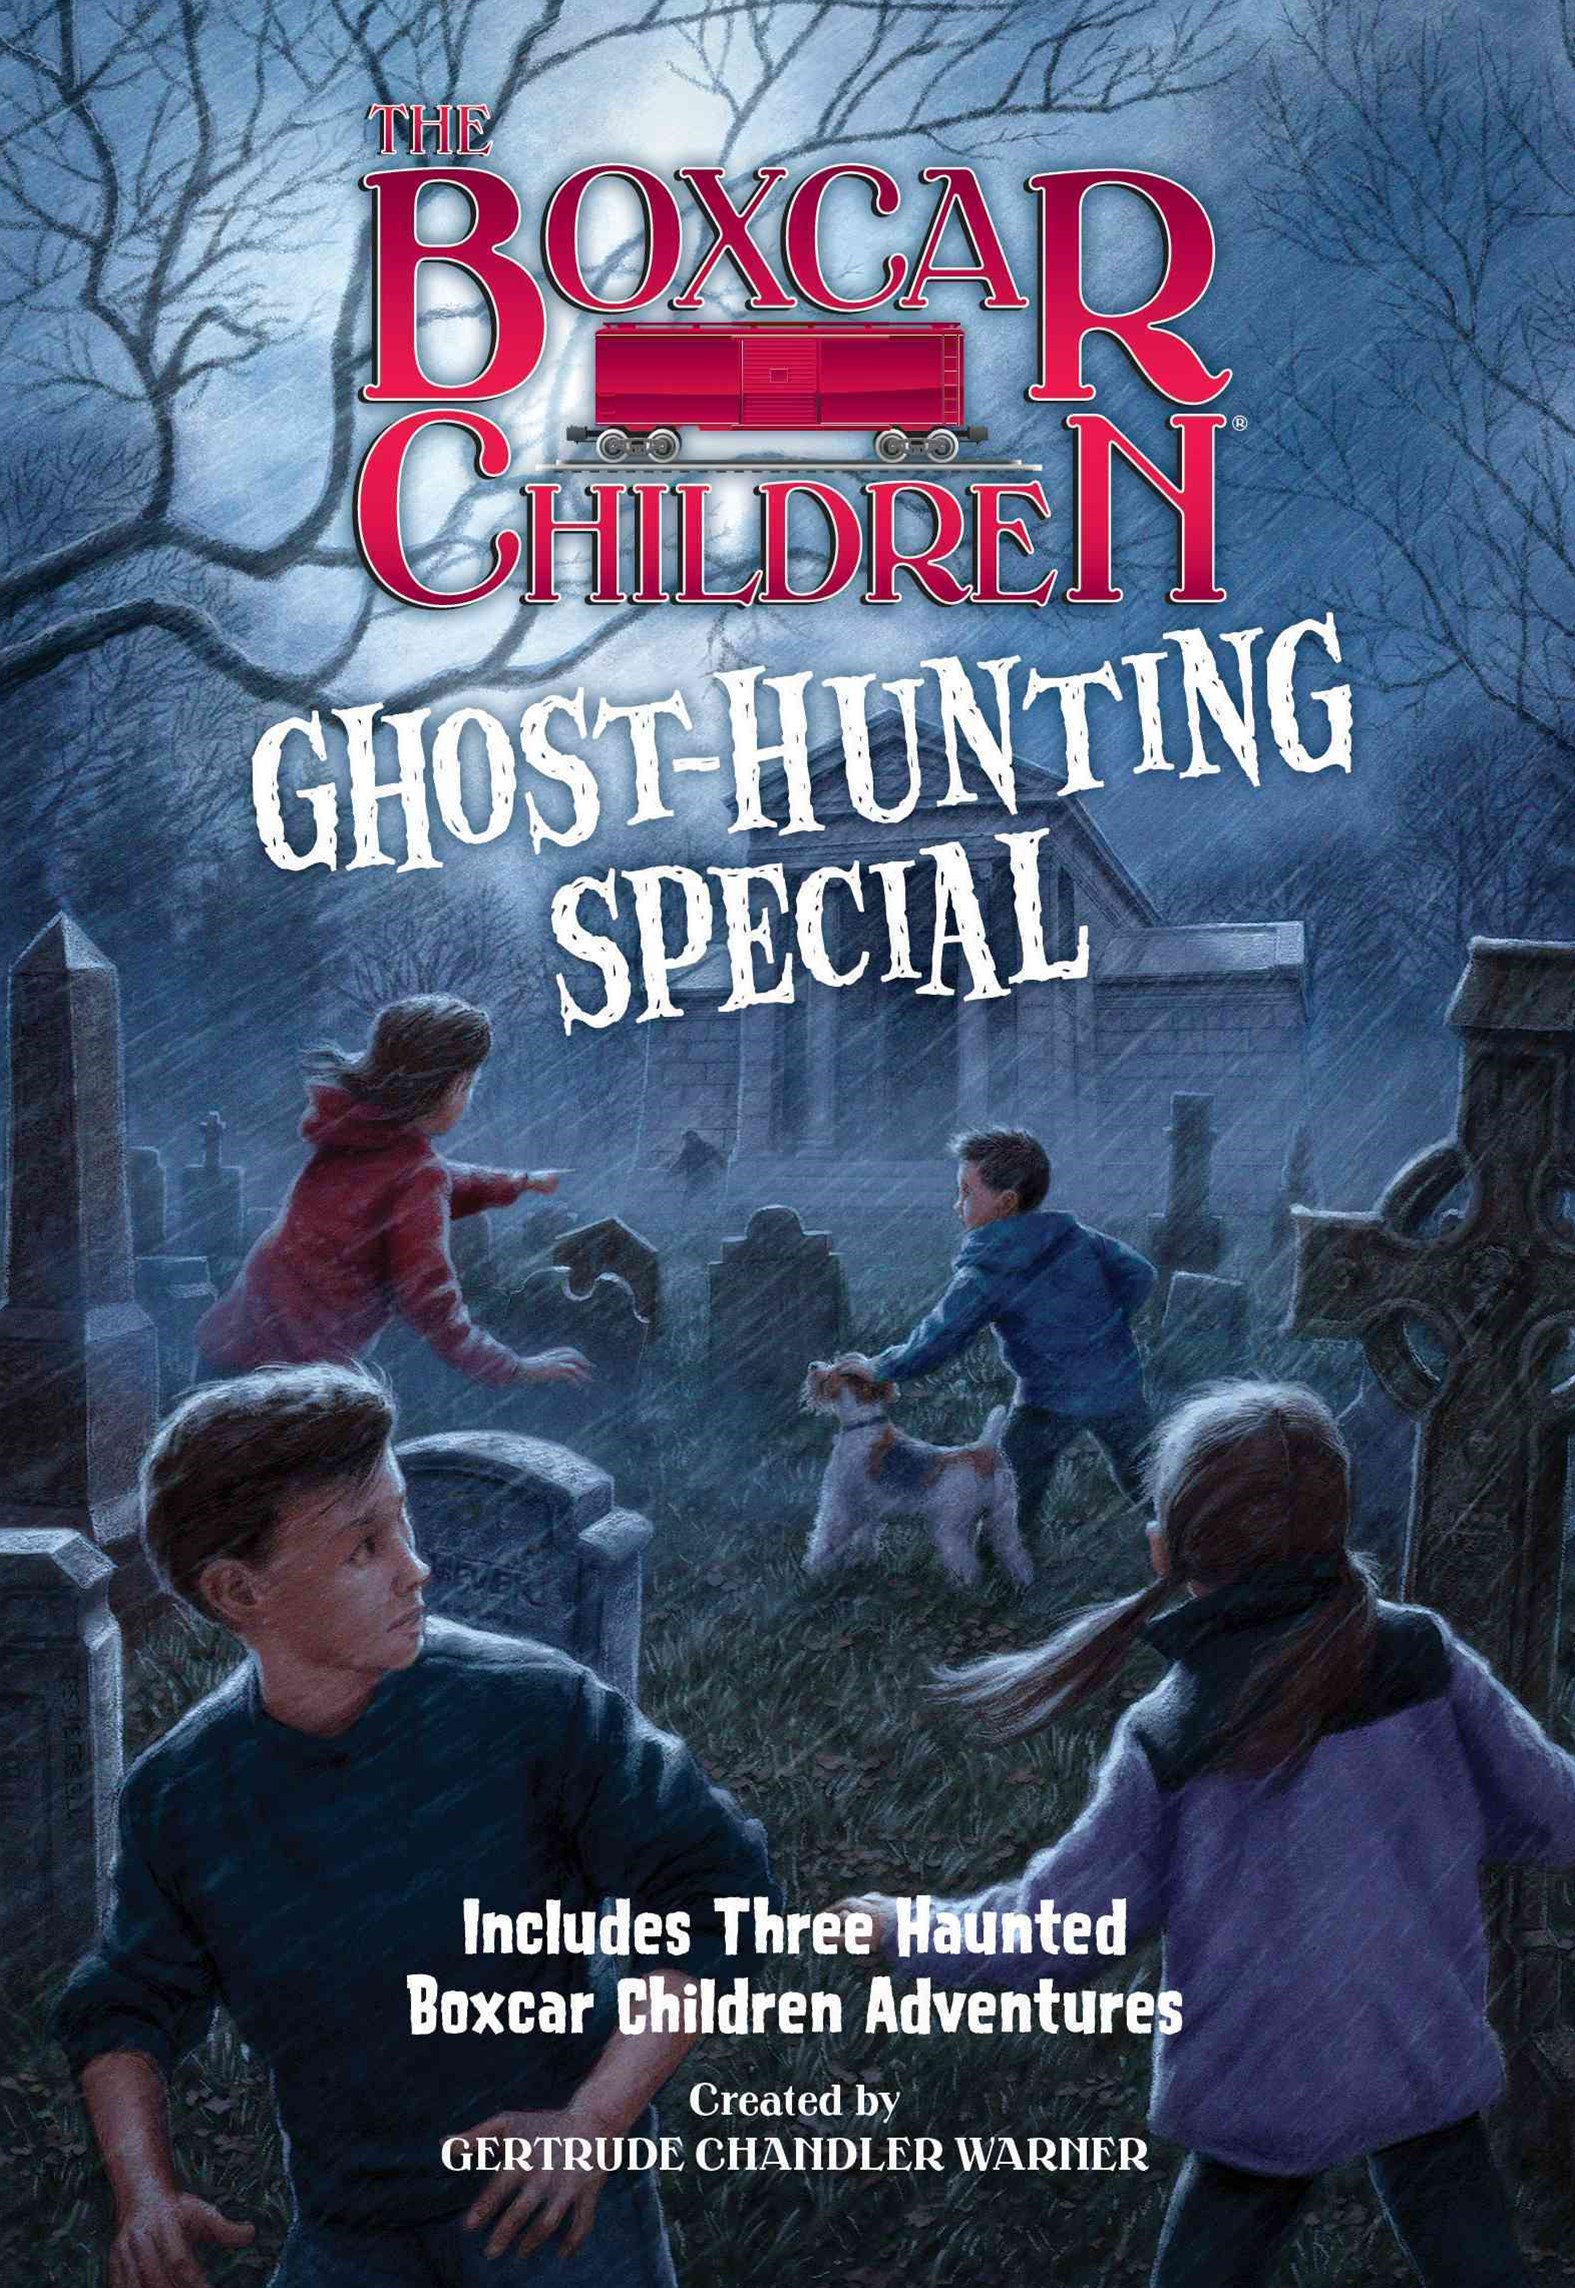 The Ghost-Hunting Special